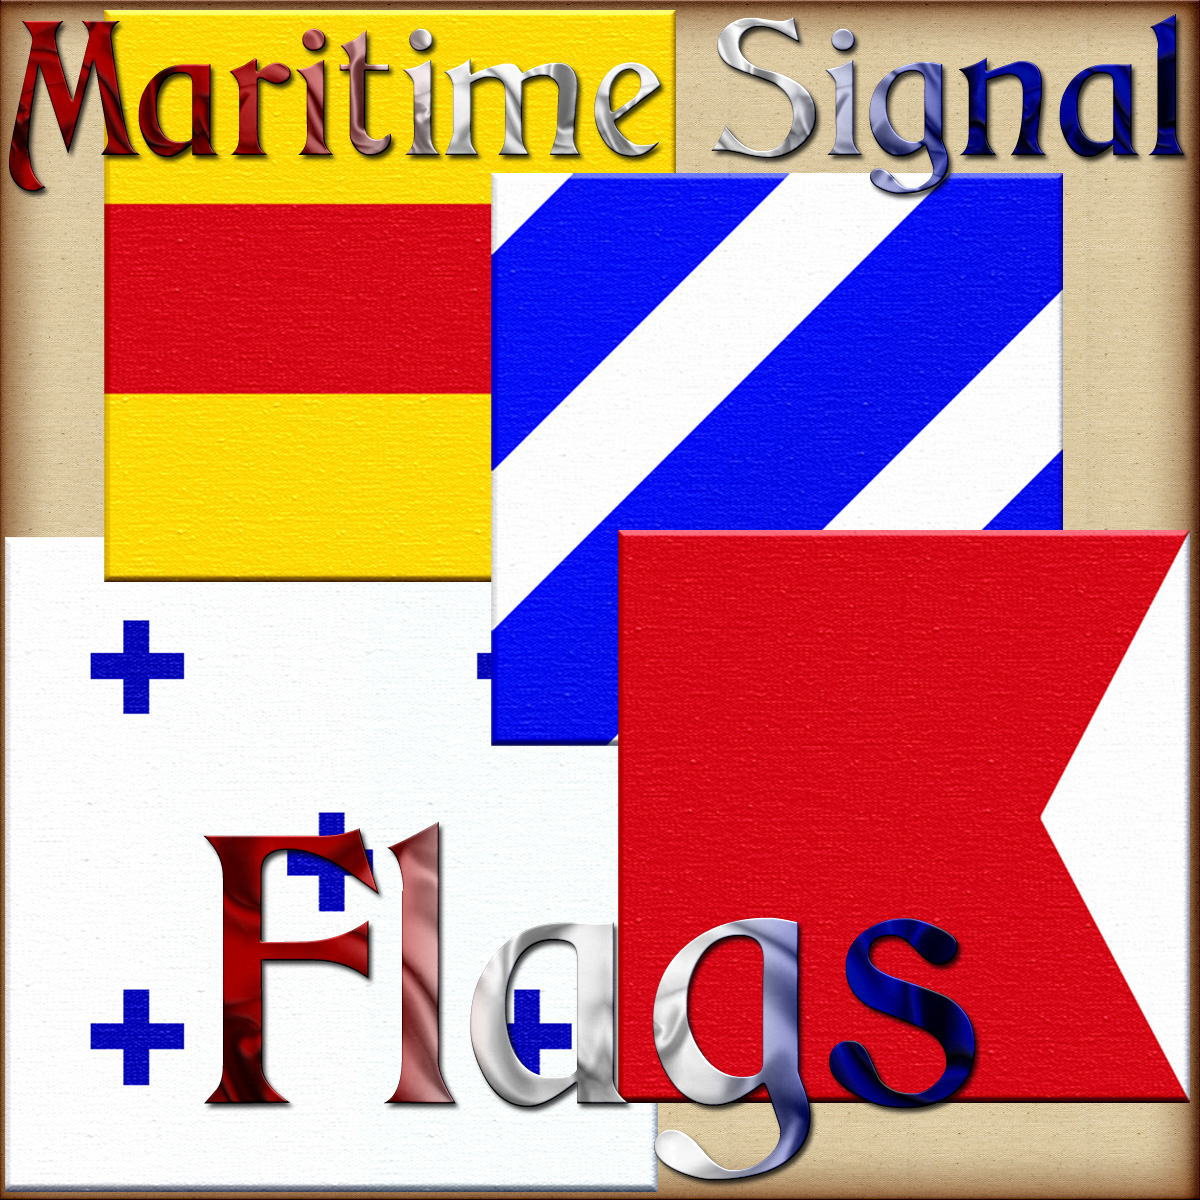 Harvest Moons Maritime Signal Flags